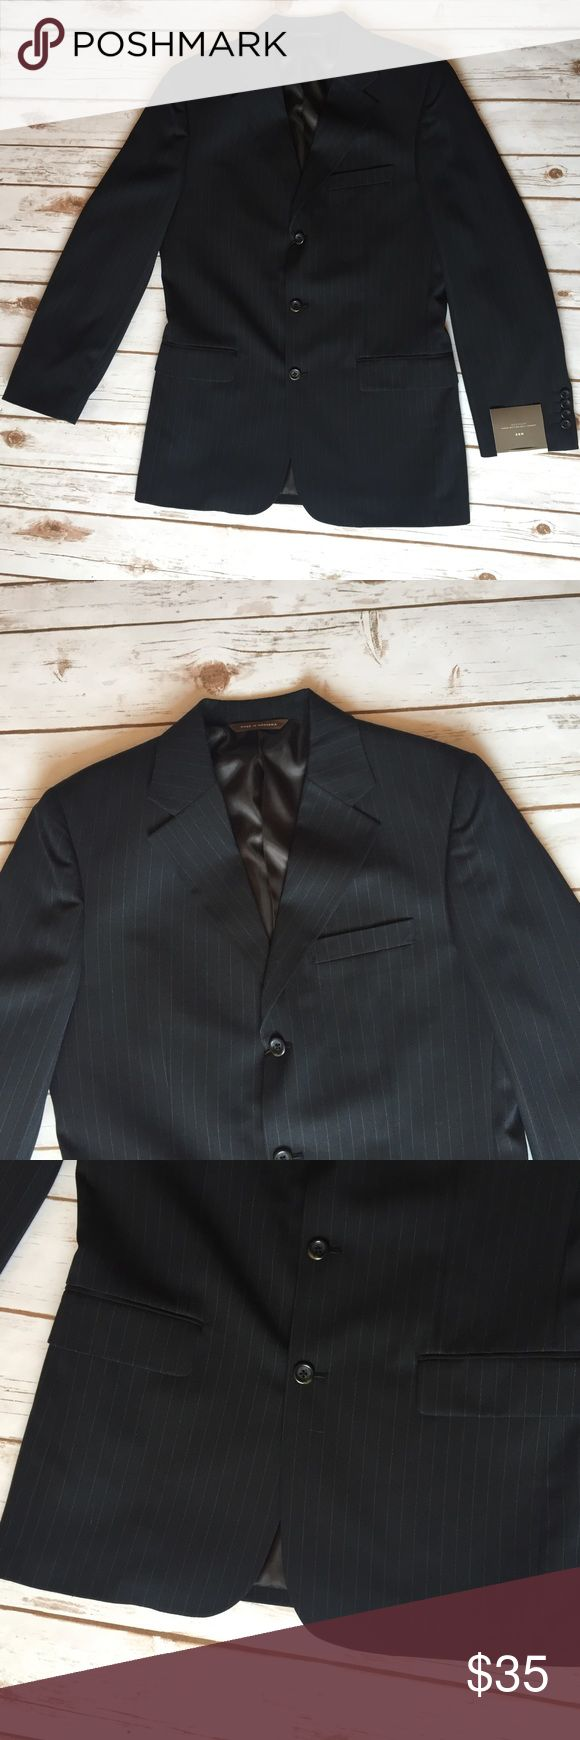 Merona Black Pinstripe Suit Jacket 38R Slight pinstripe suit jacket in black, matching pants also available in closet.  New with tags. Merona Suits & Blazers Suits